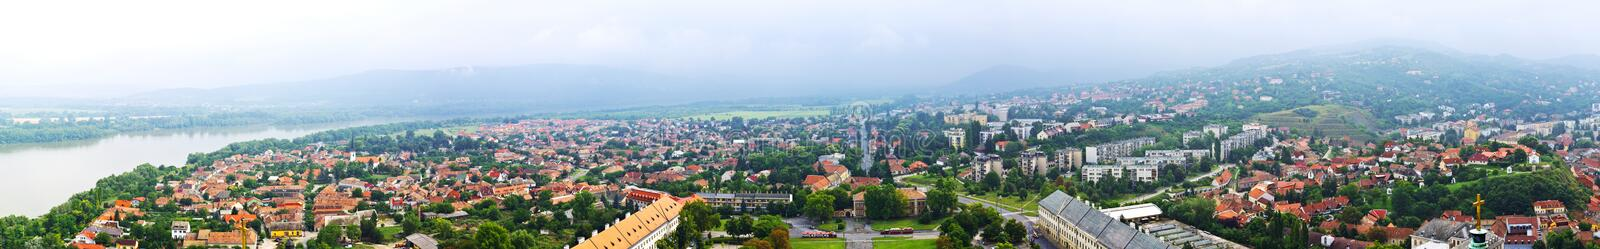 Esztergom Panoramic. Huge panoramic of famous town Esztergom and the Danube River in Hungary stock photos